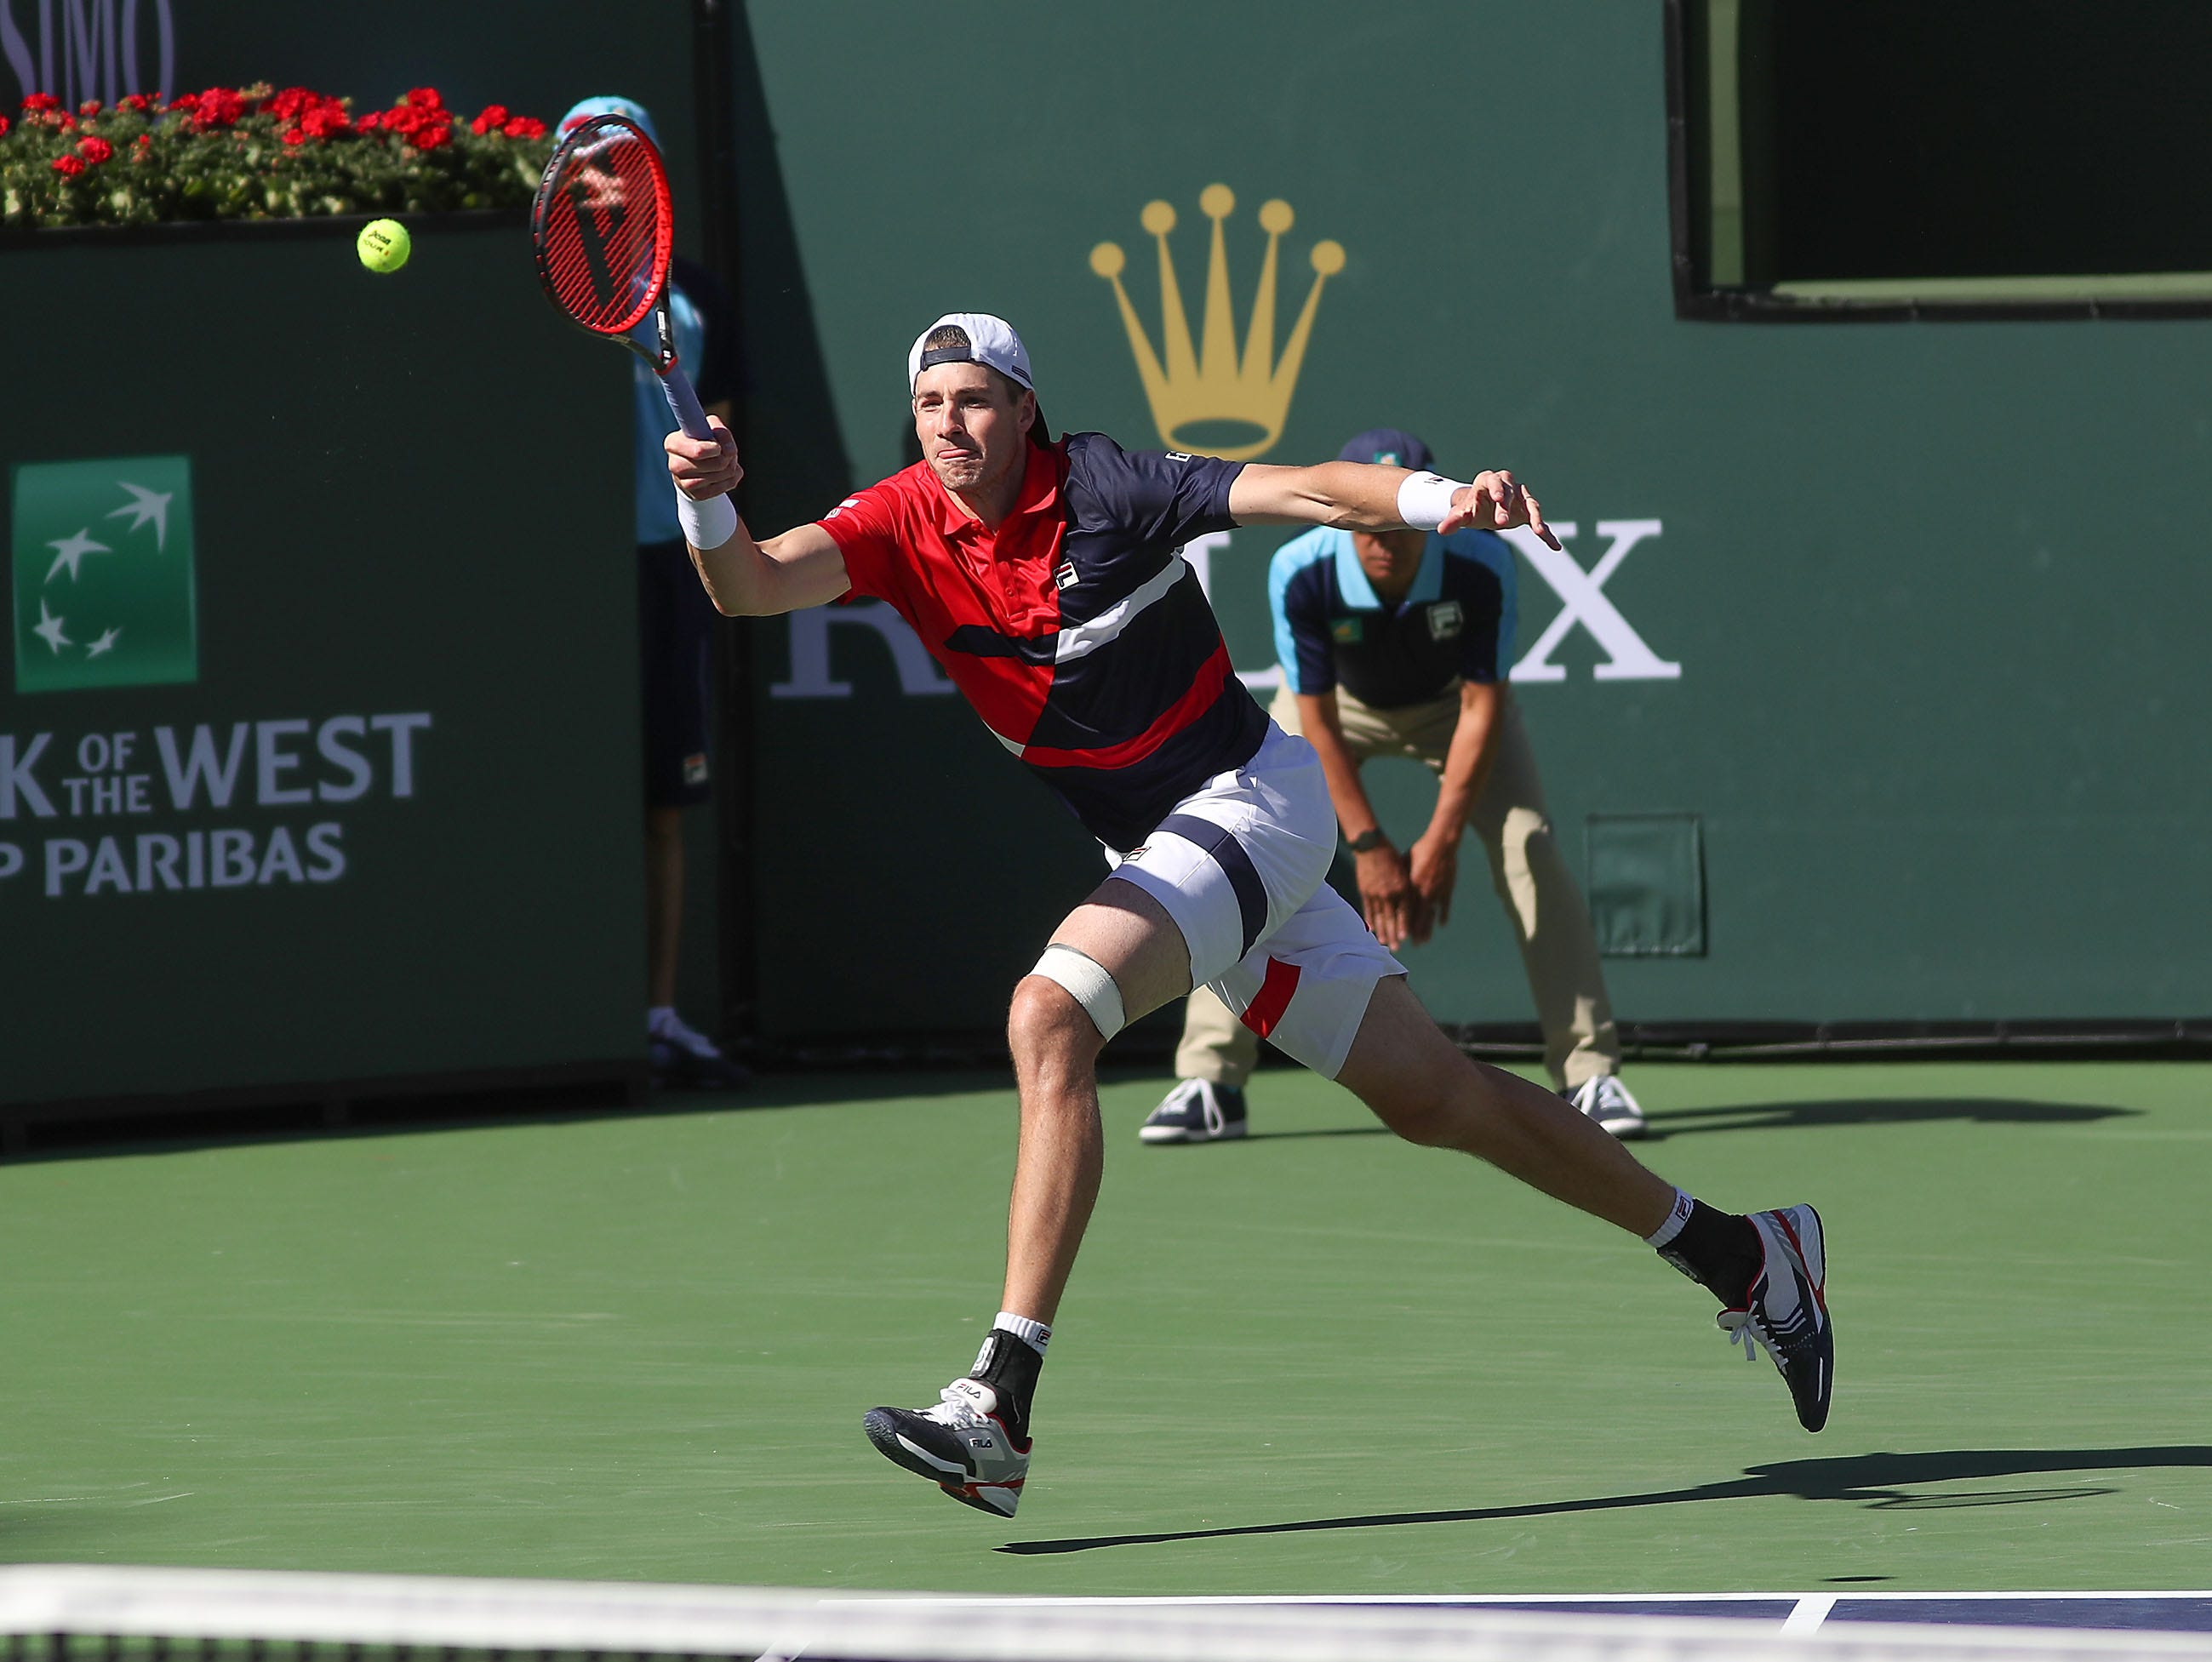 John Isner reaches for a shot during his match against Karen Khachanov during the BNP Paribas Open in Indian Wells, March 13, 2019.